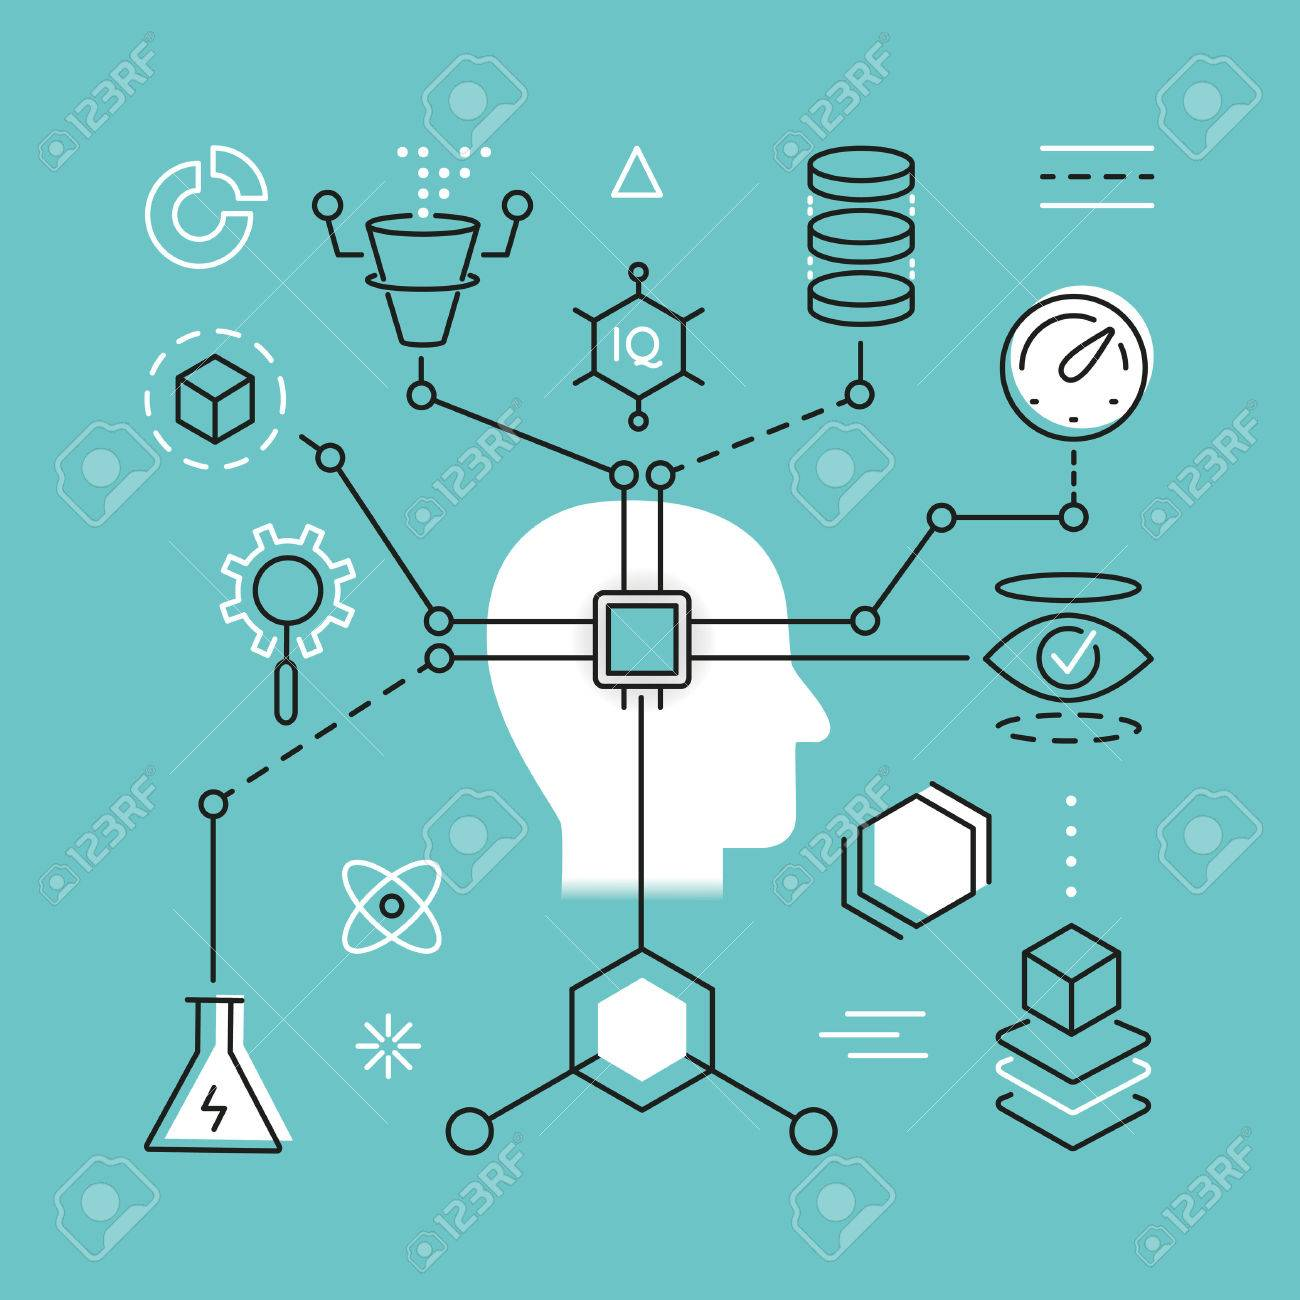 Modern Thin Line Concept of Artificial Intelligence and Data Science Technology - 58453367